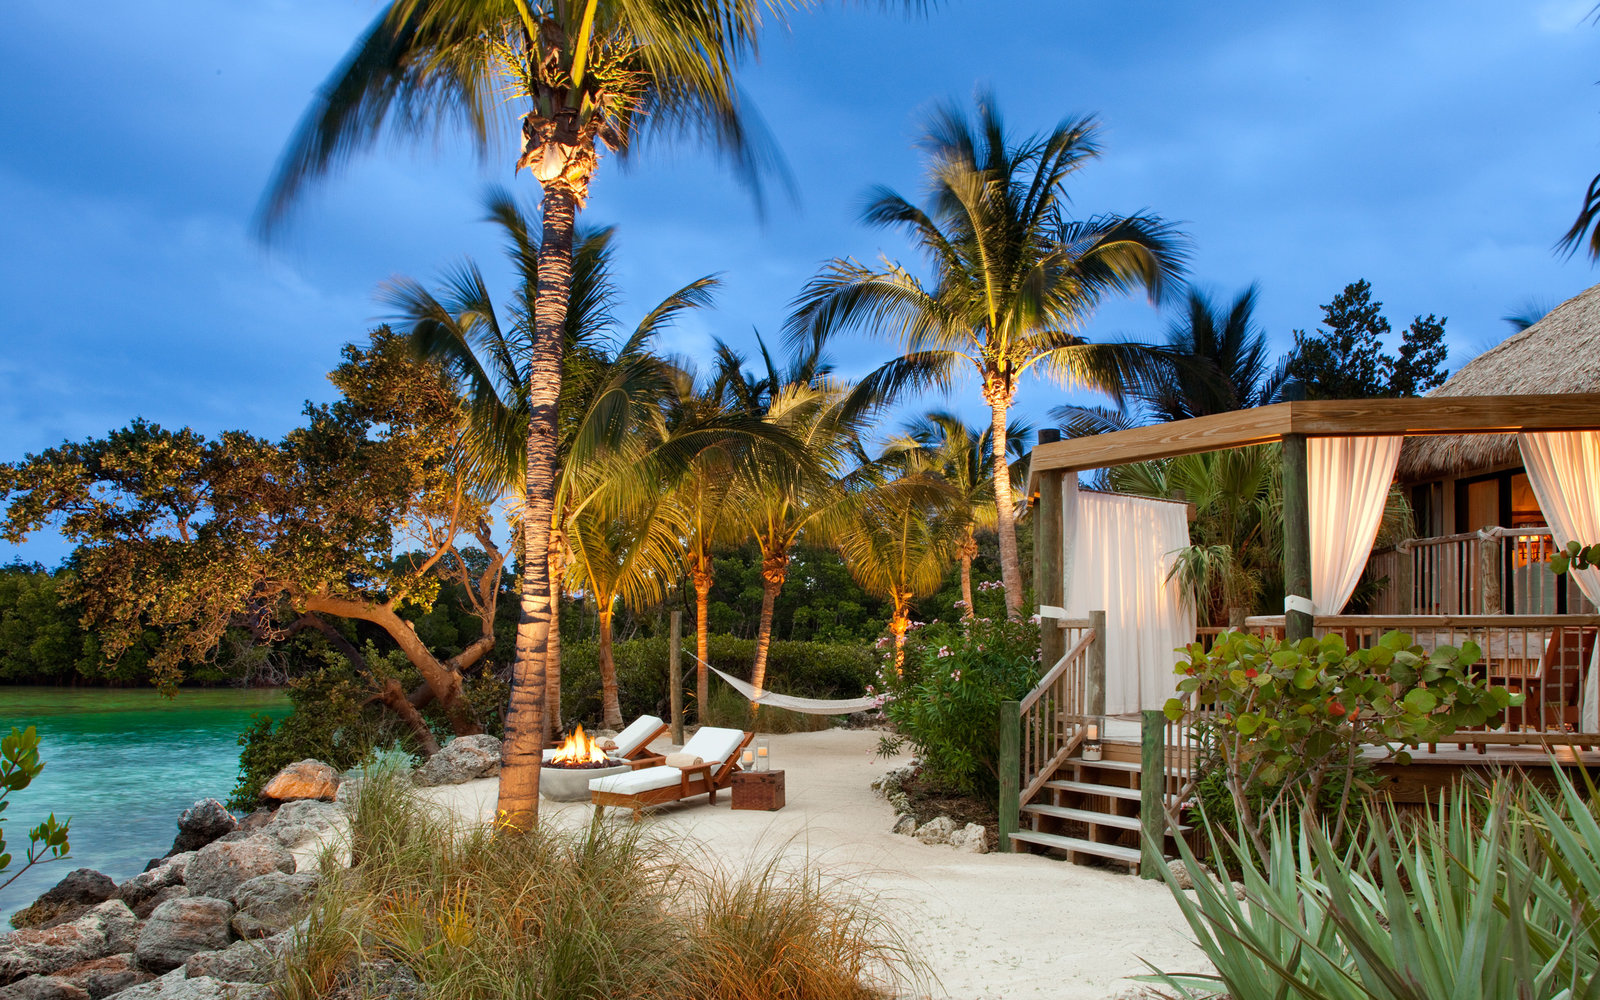 Little Palm Island Resort and Spa, Little Torch Key, Florida